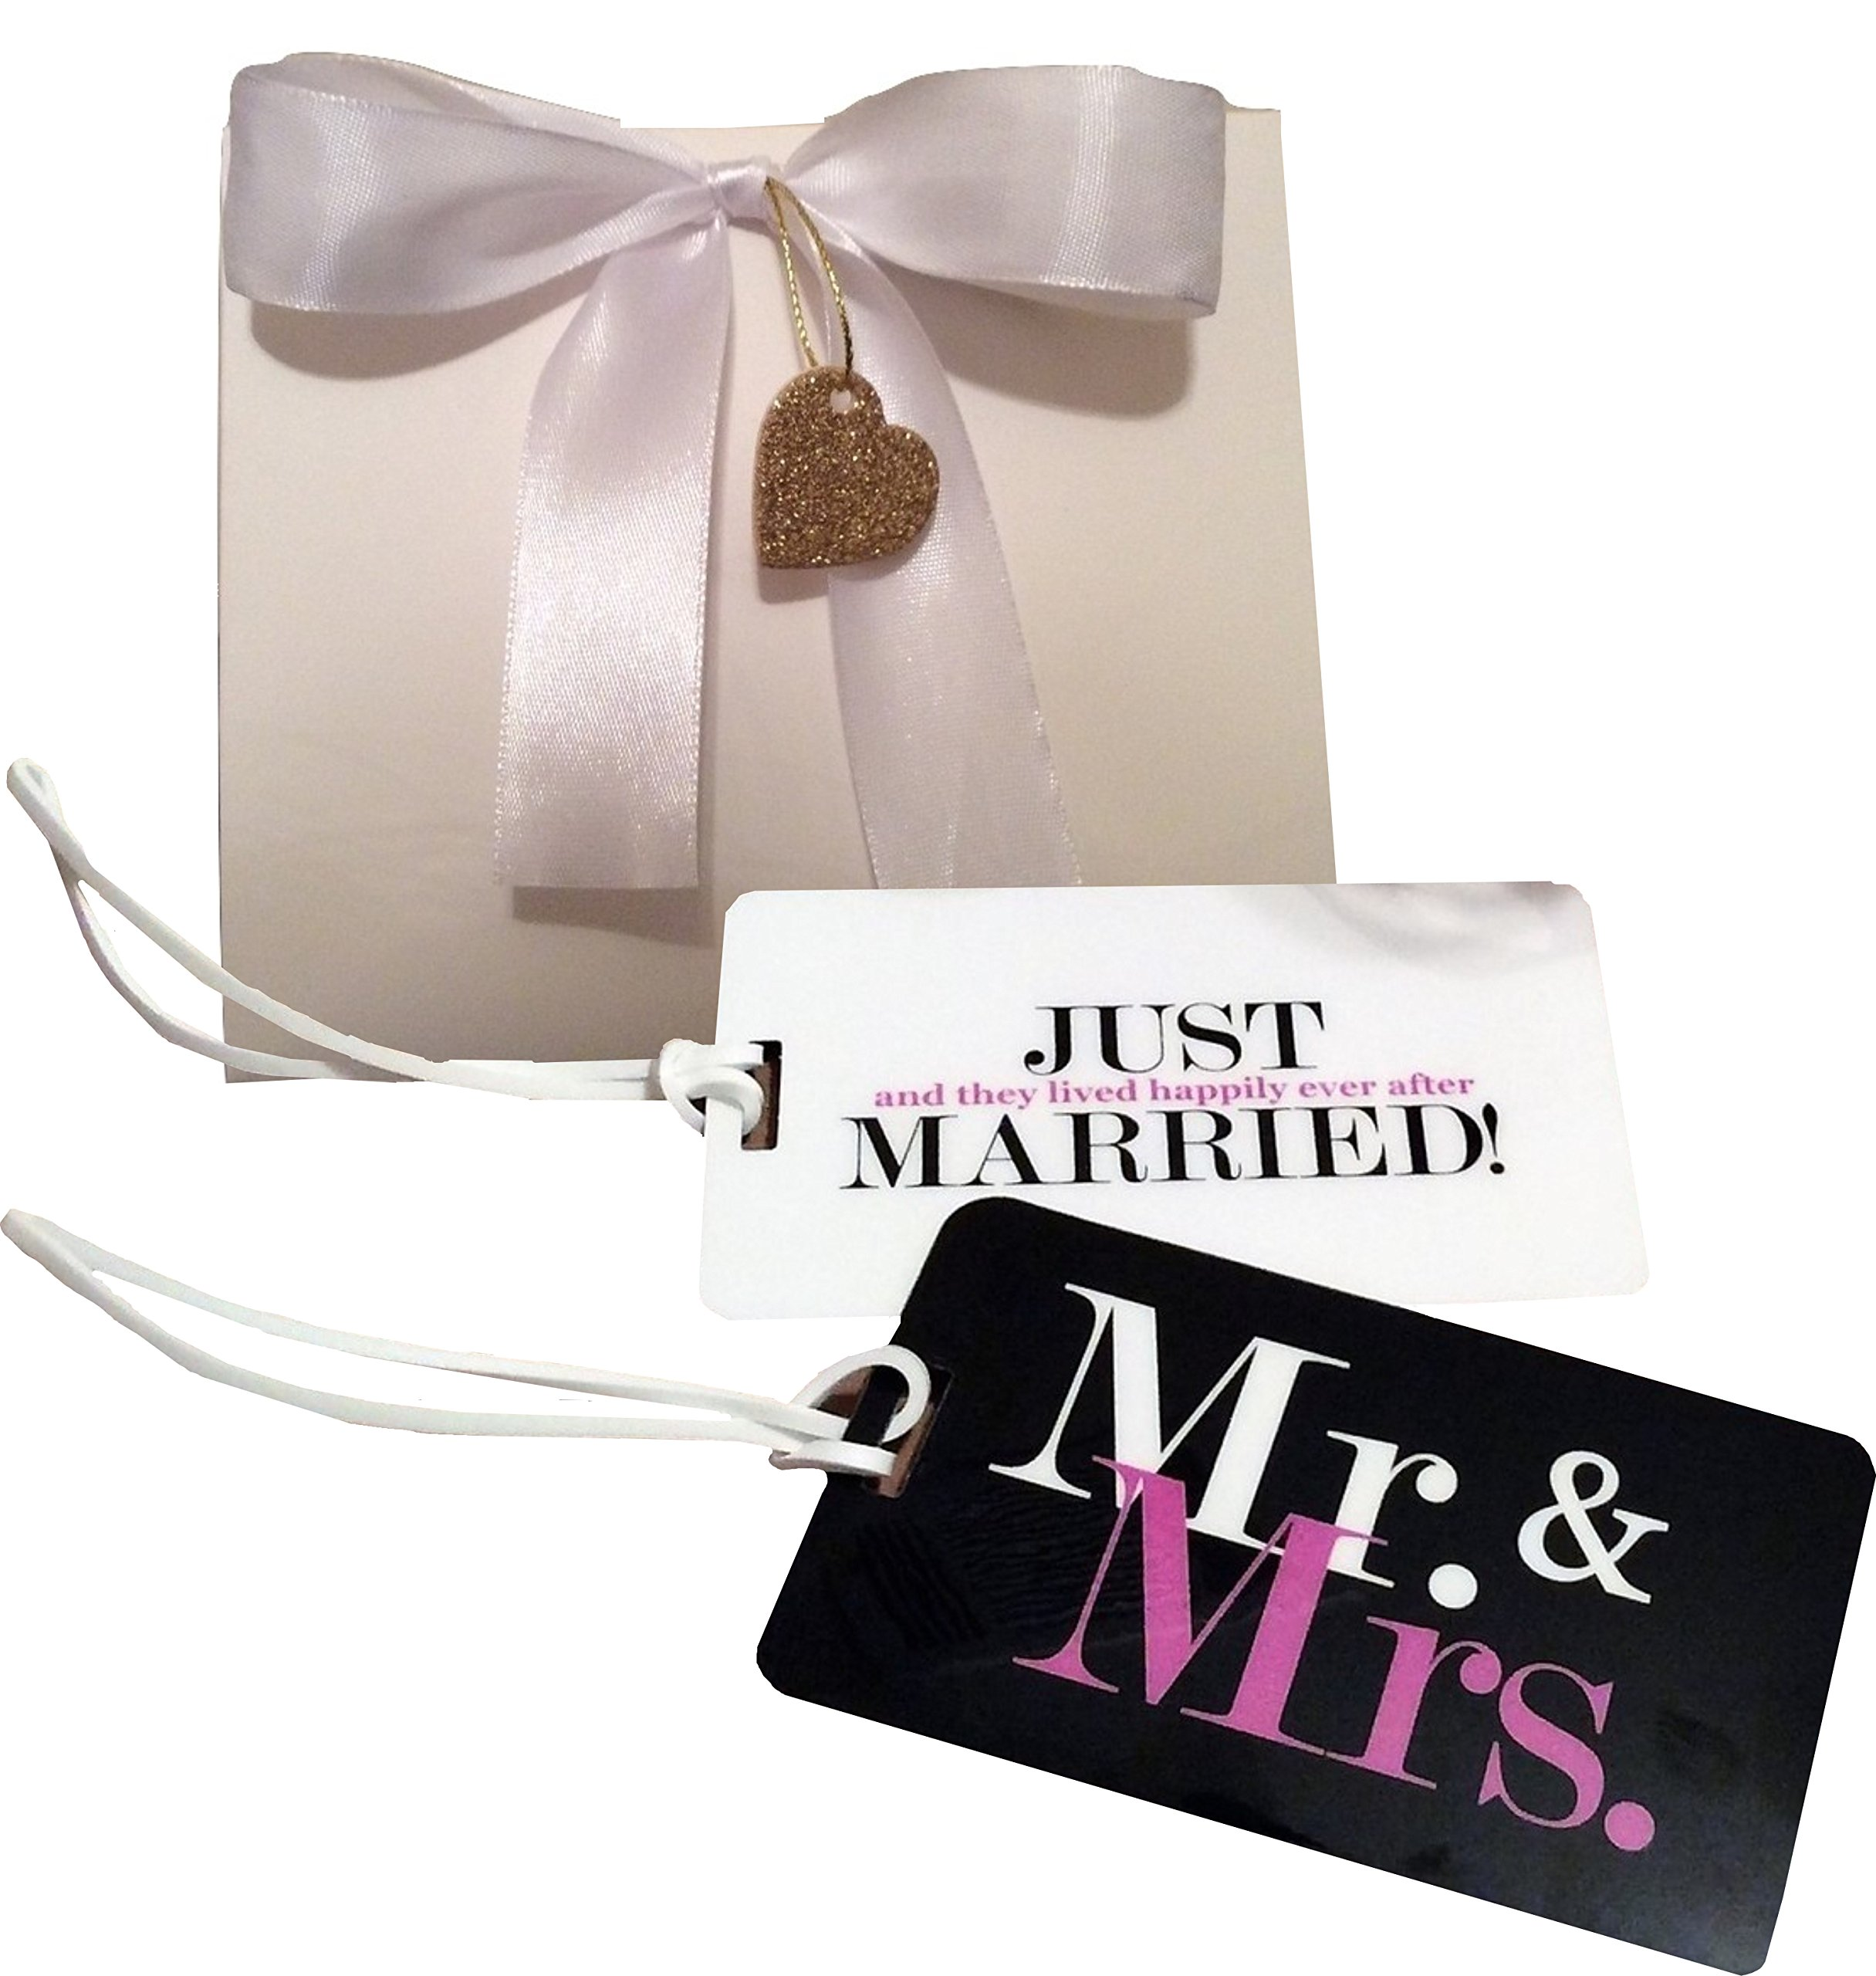 Mr. And Mrs. Just Married Luggage Tag Gift Set (Wedding, Honeymoon, Luggage Tags)